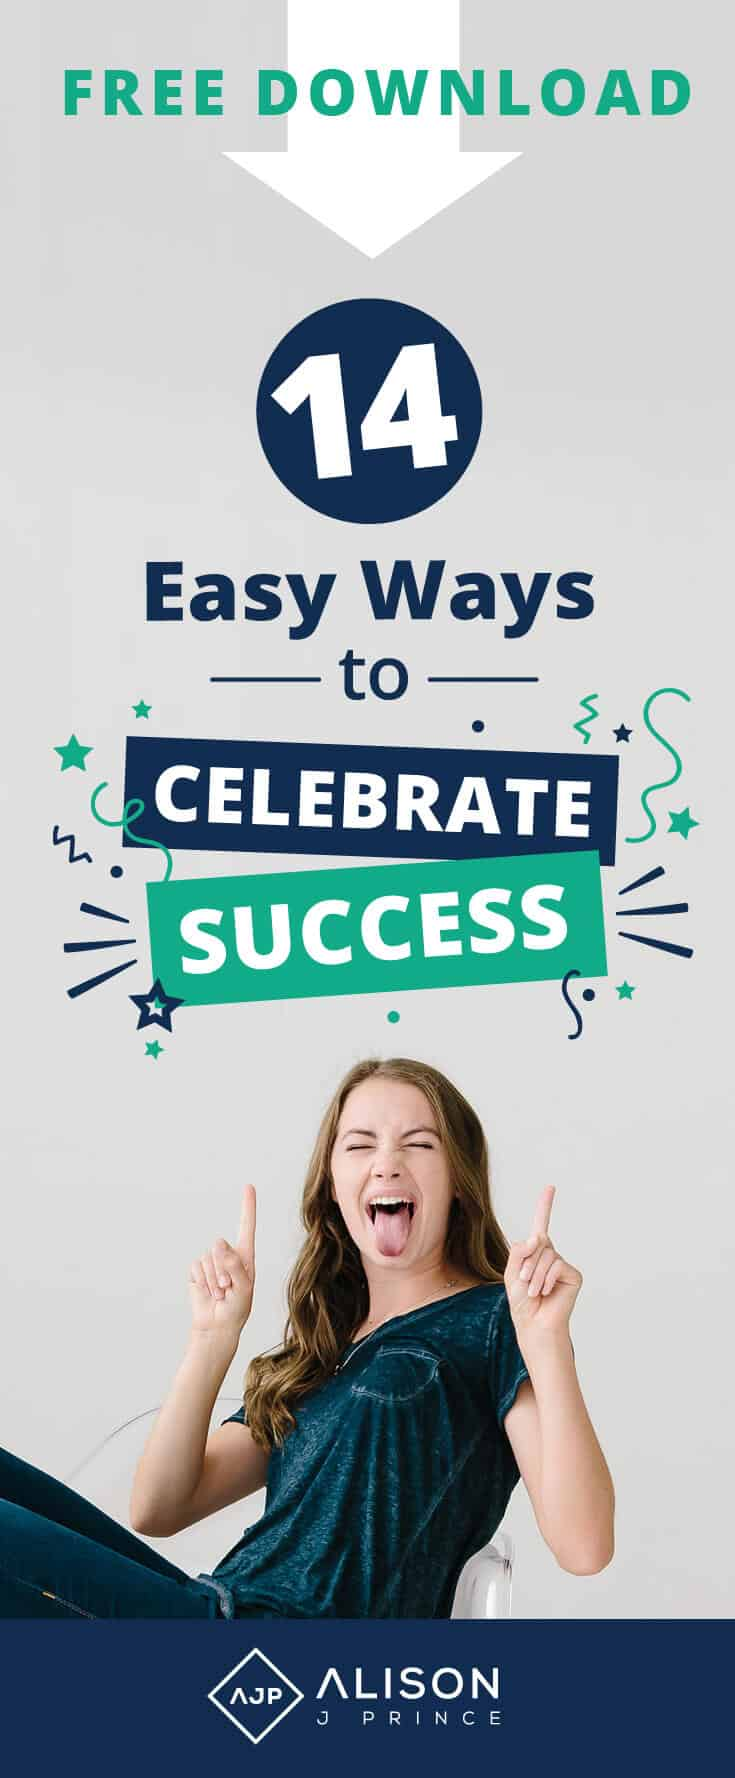 Free Download - 14 Ways to Celebrate Success - Alison Prince